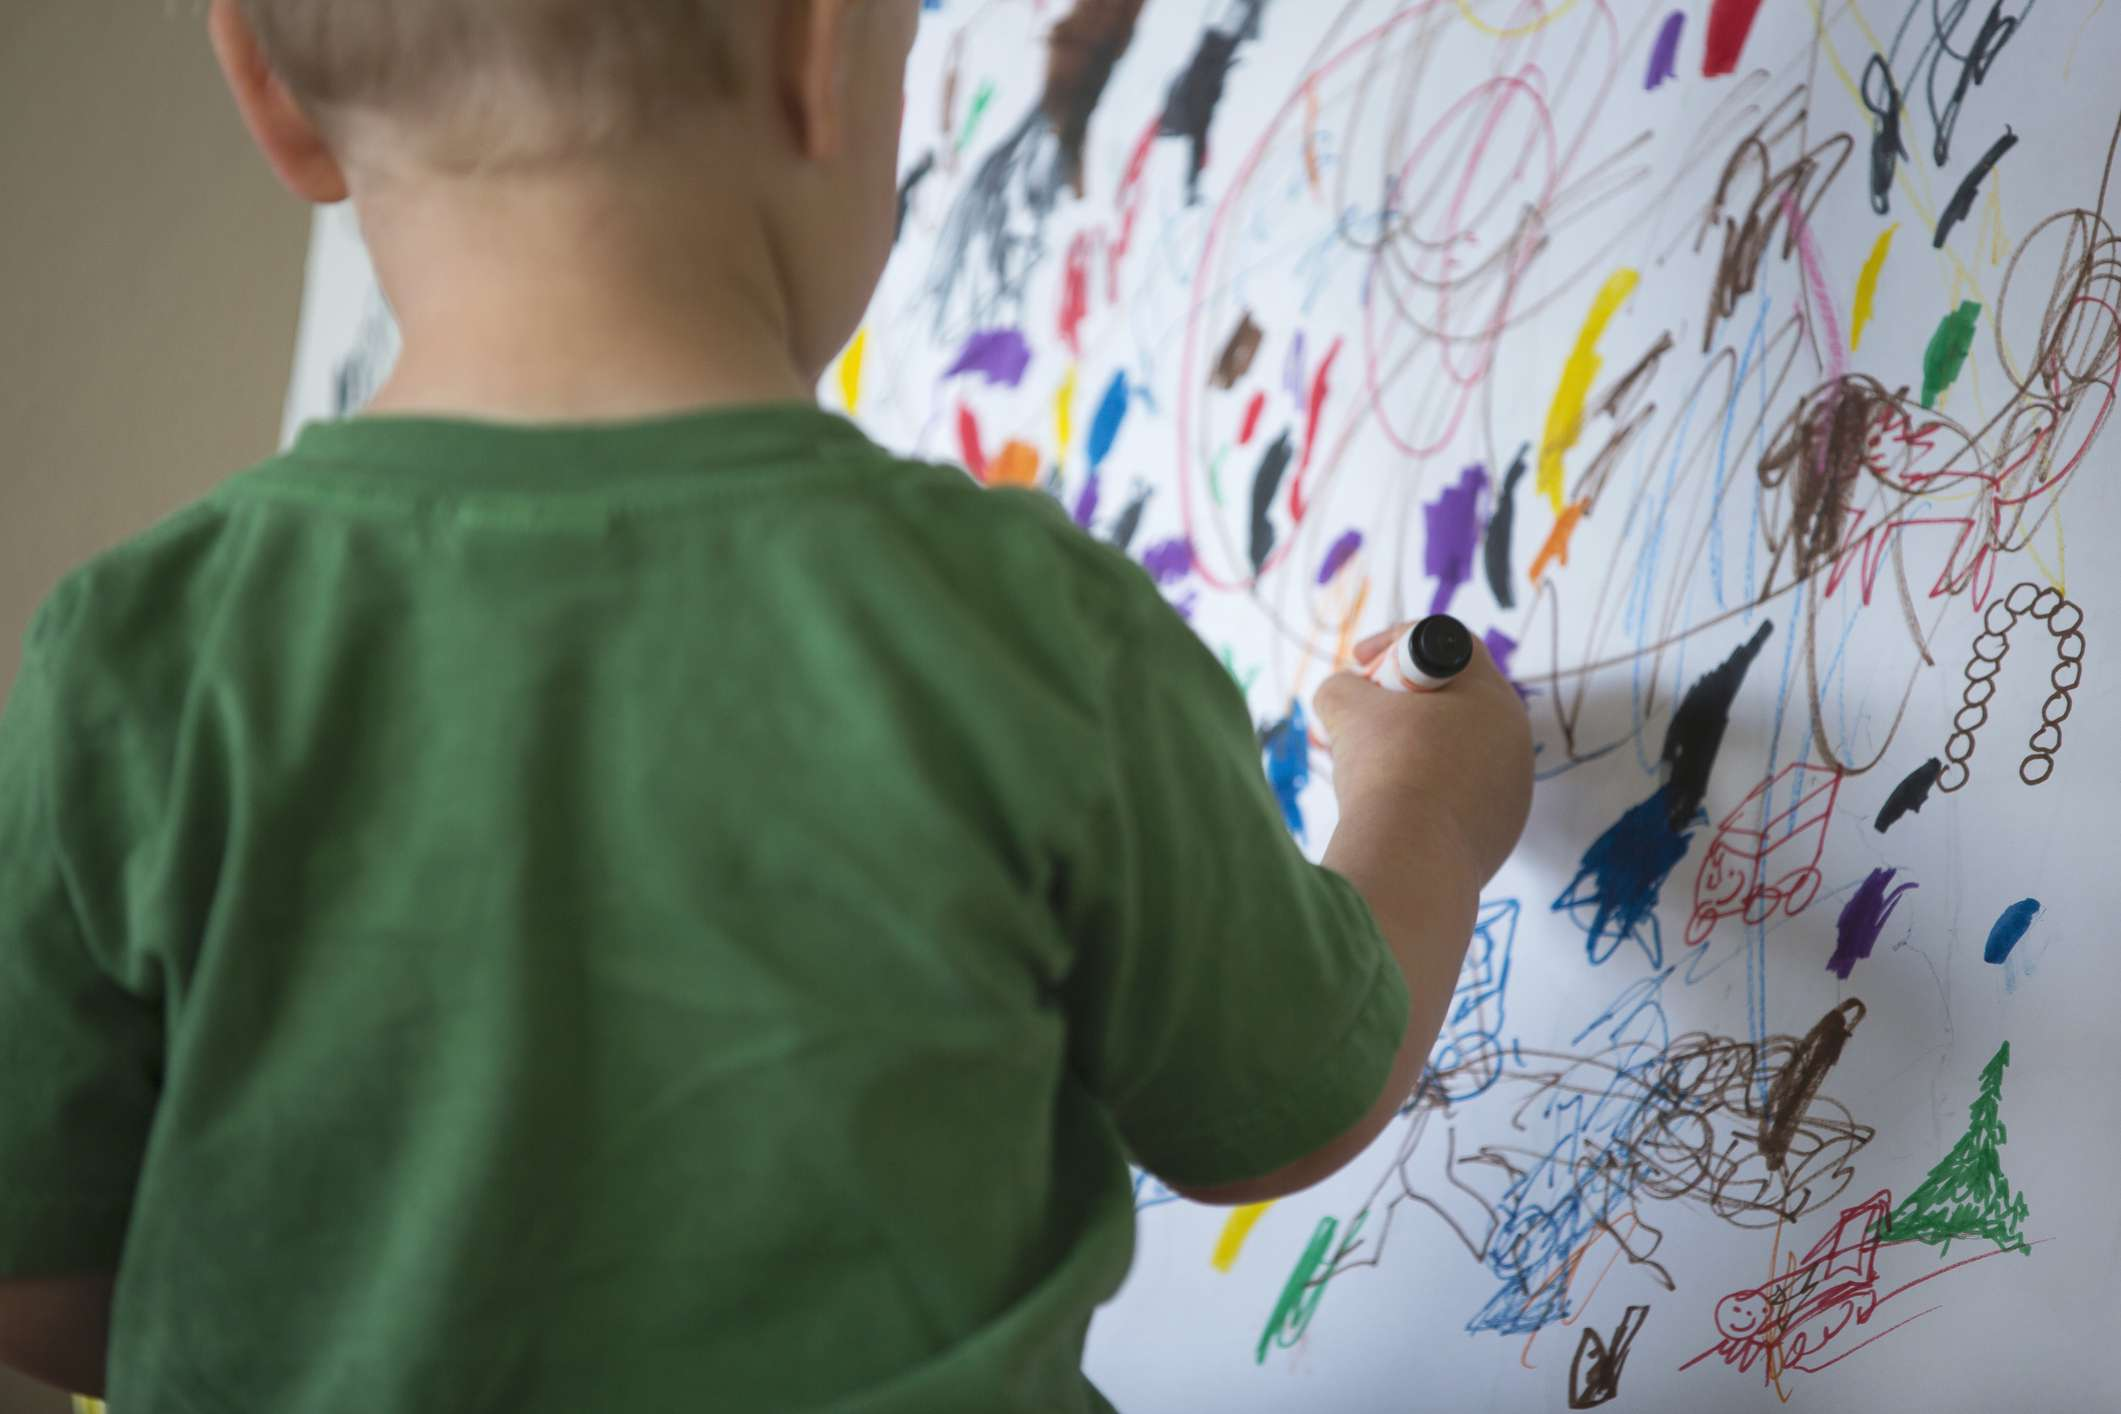 Toddler using a marker and drawing on a wall.